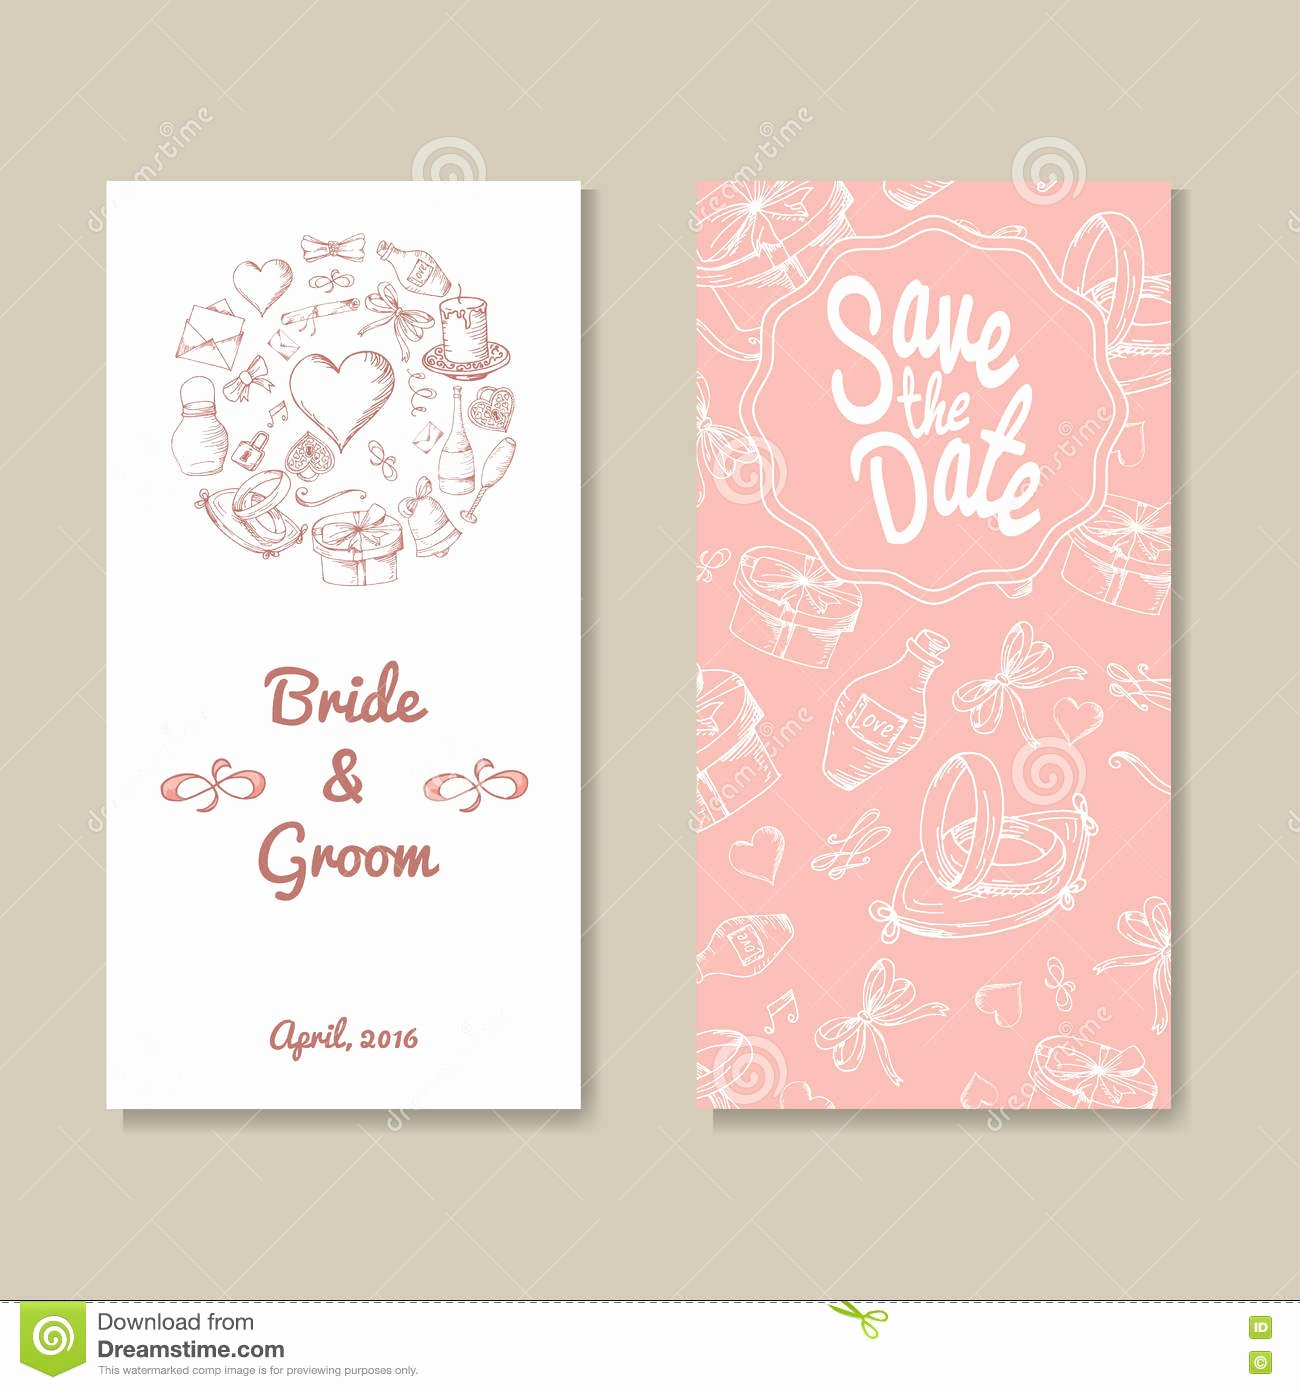 Card Vector Template for Wedding Set Invitations for